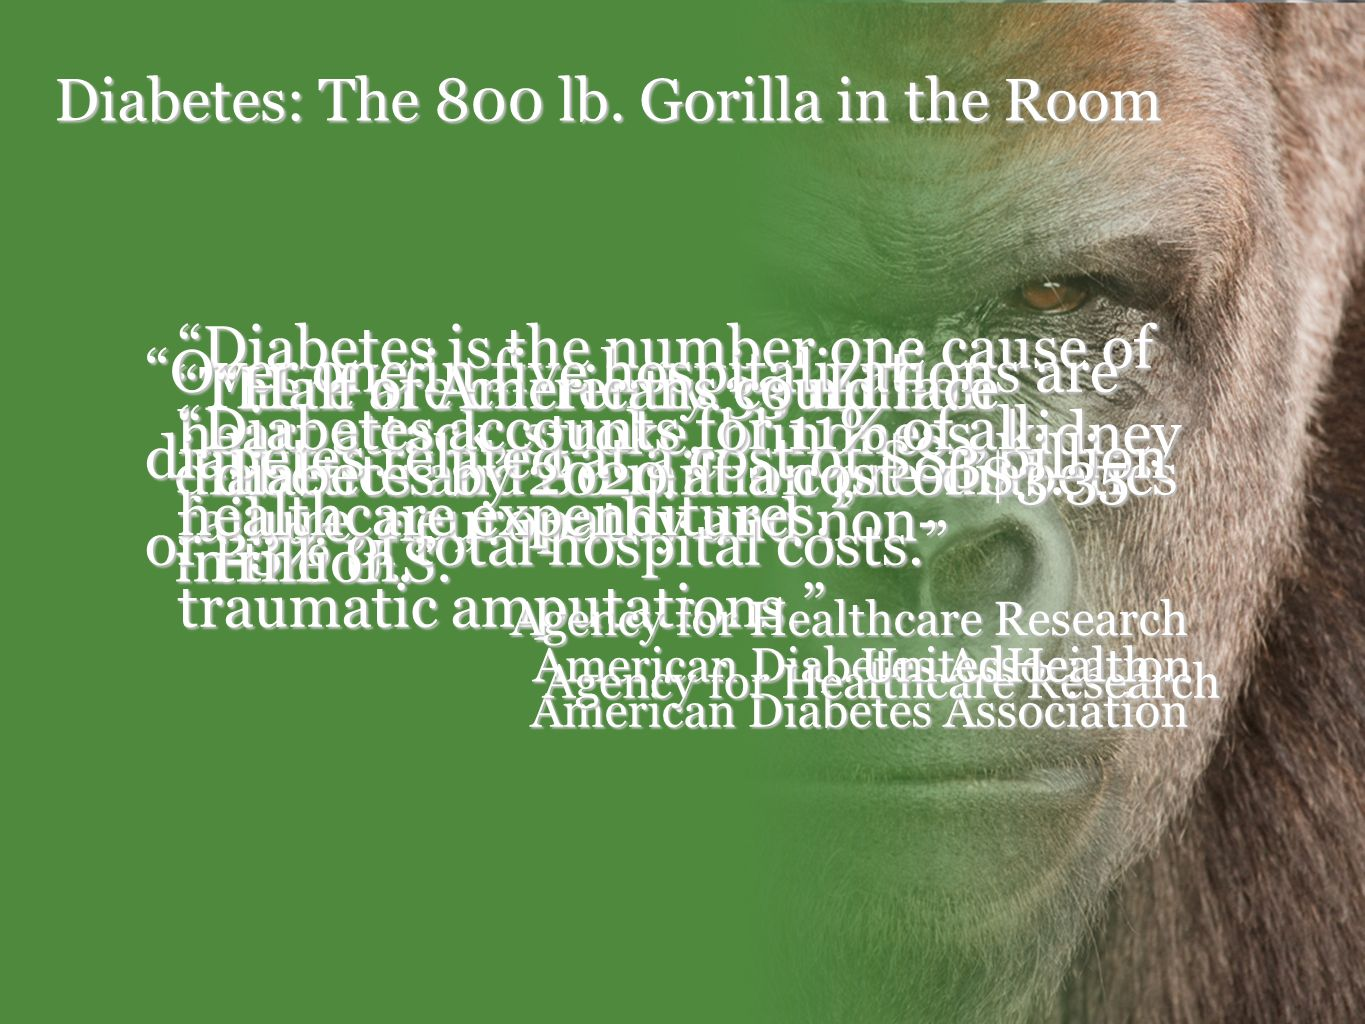 Diabetes: The 800 lb. Gorilla in the Room There are currently 33 million diabetics and 80 million pre-diabetics in the U.S. American Diabetes Associat